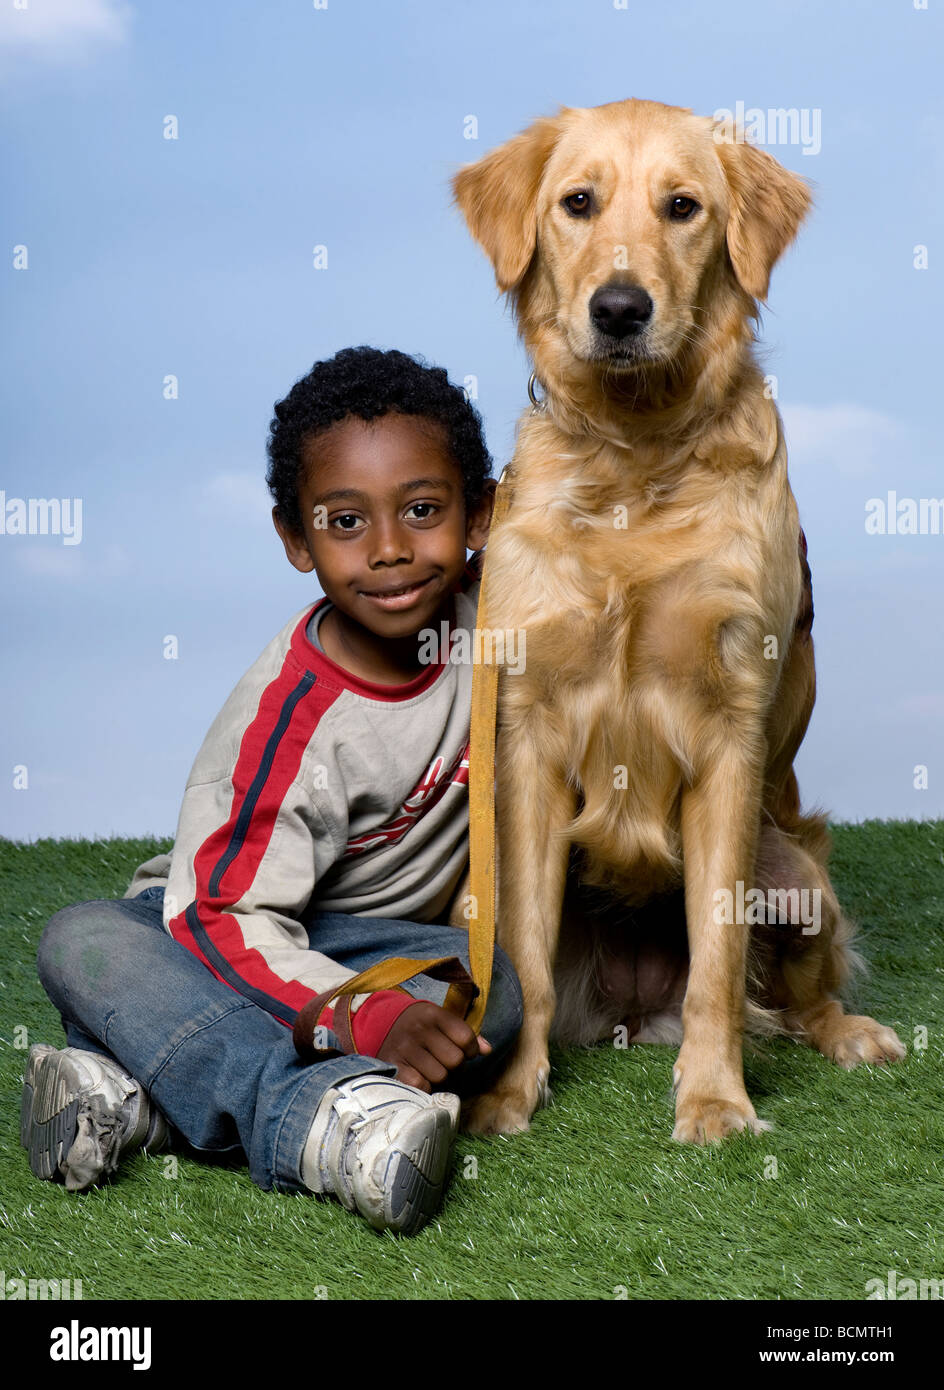 African American boy and a Golden Retriever sitting on the grass, 1 year old, against a blue sky, studio shot - Stock Image